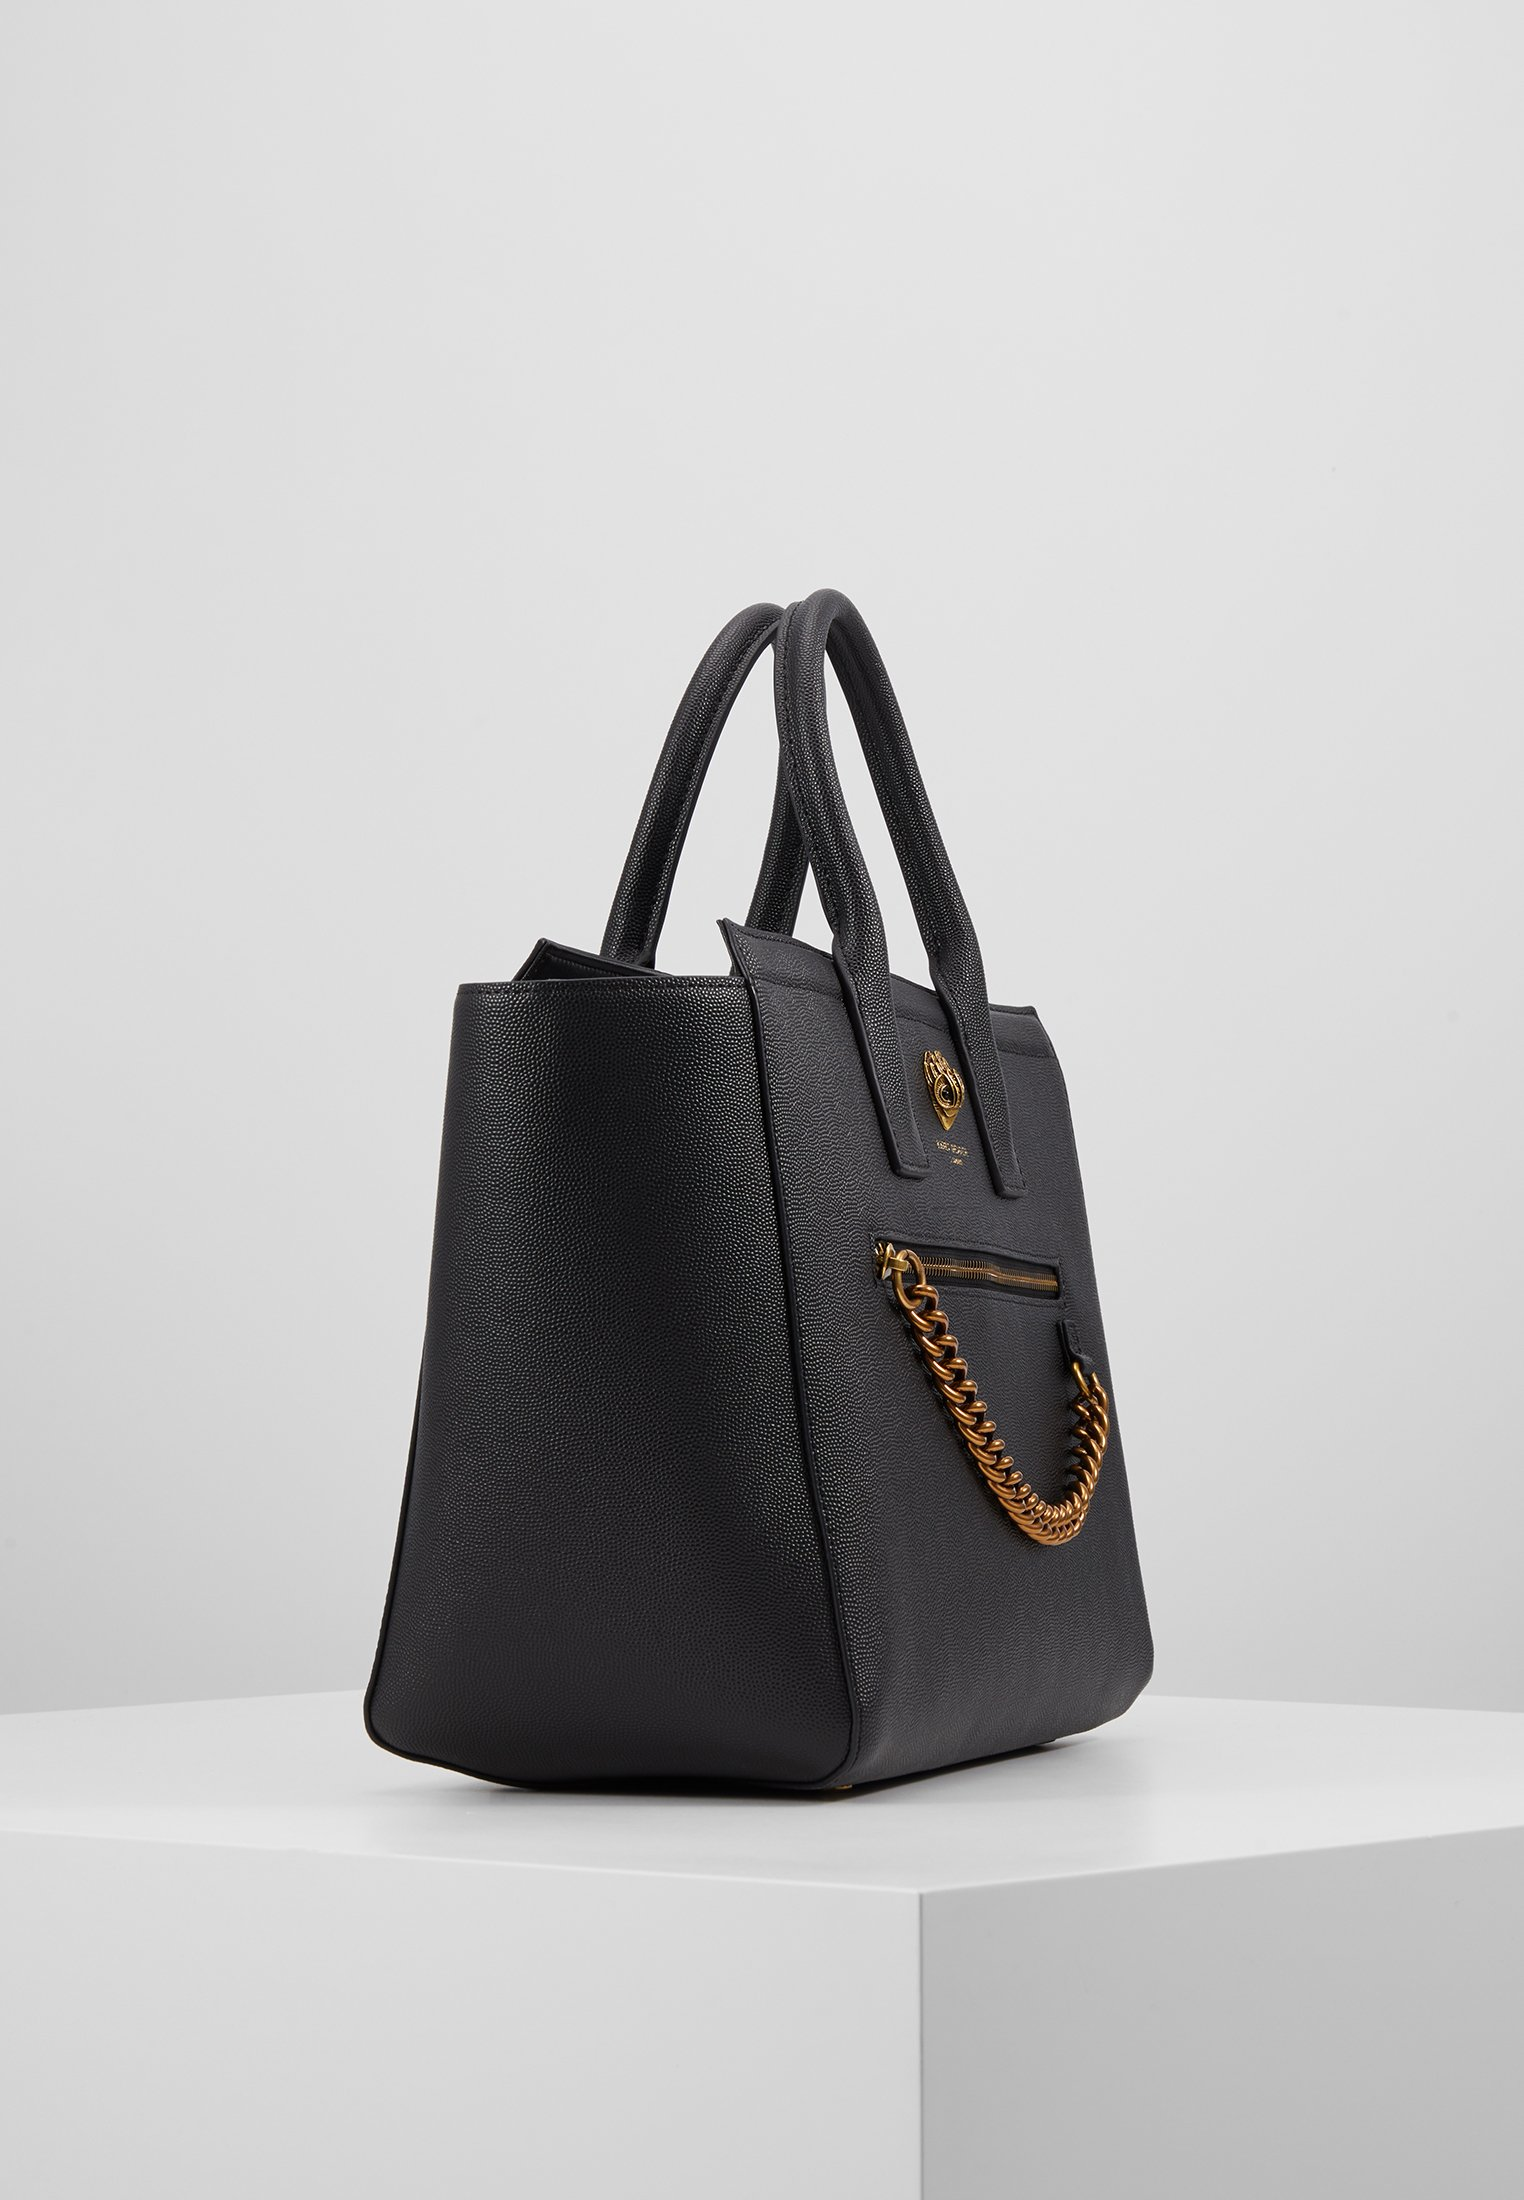 Kurt Geiger London Shoreditch - Sac À Main Black